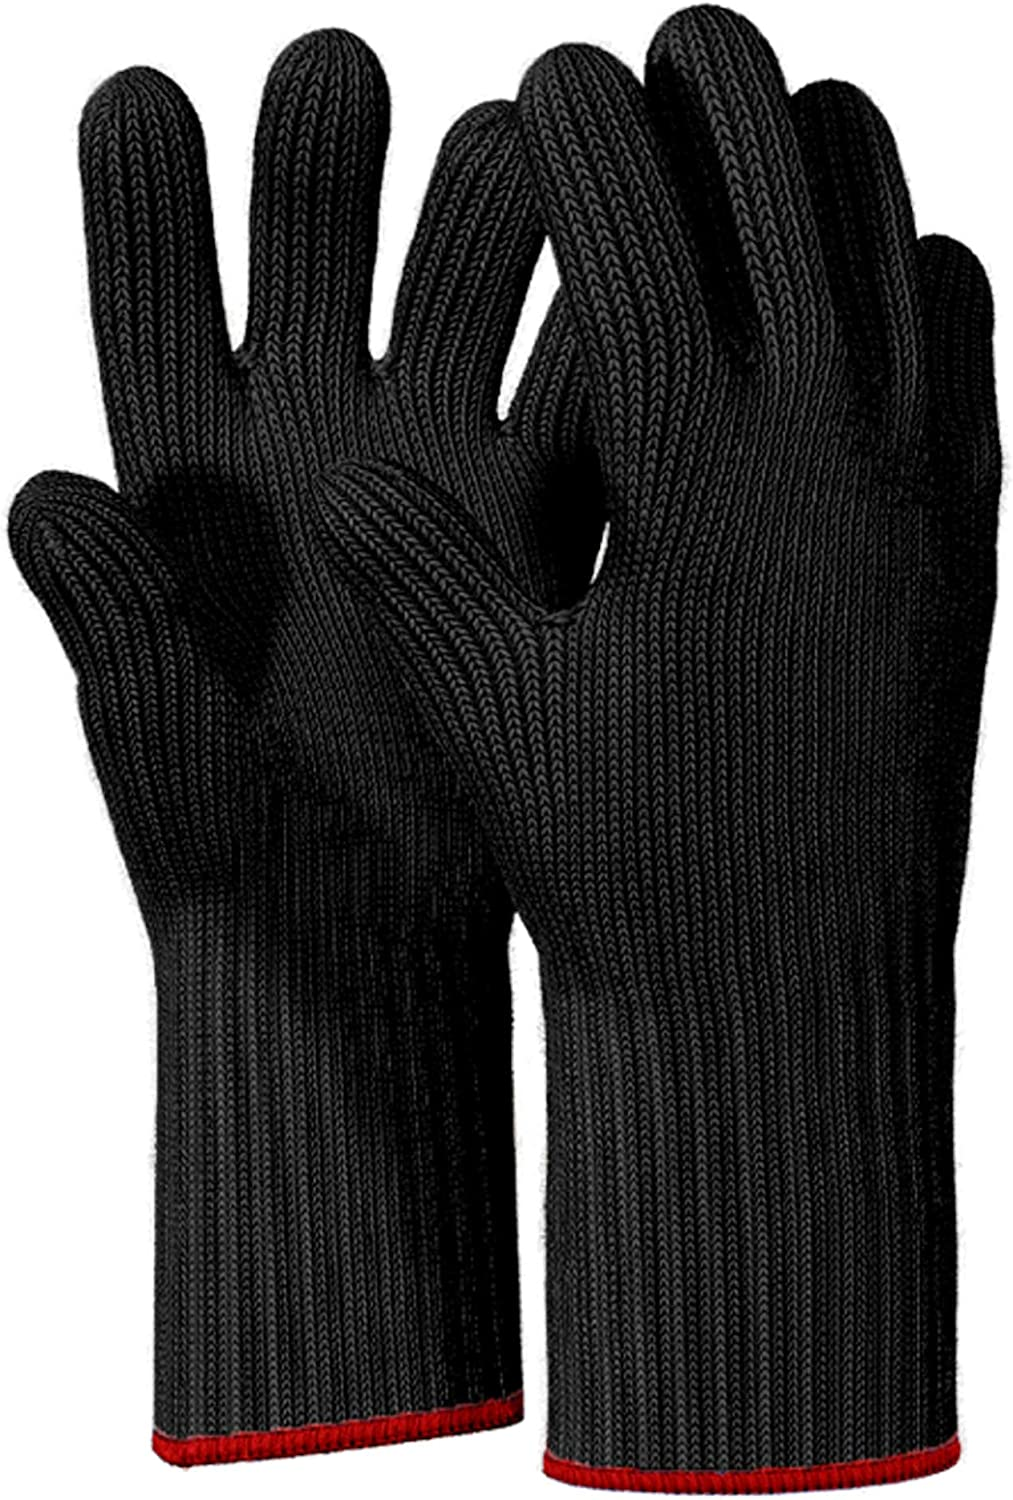 1 PAIR Long Heat Resistant Gloves Oven Gloves Heat Resistant With Fingers Oven Mitts Kitchen Pot Holders Cotton Gloves Long Kitchen Gloves Double Oven Mitt Set Oven Gloves With Fingers (Black, 2 pcs)